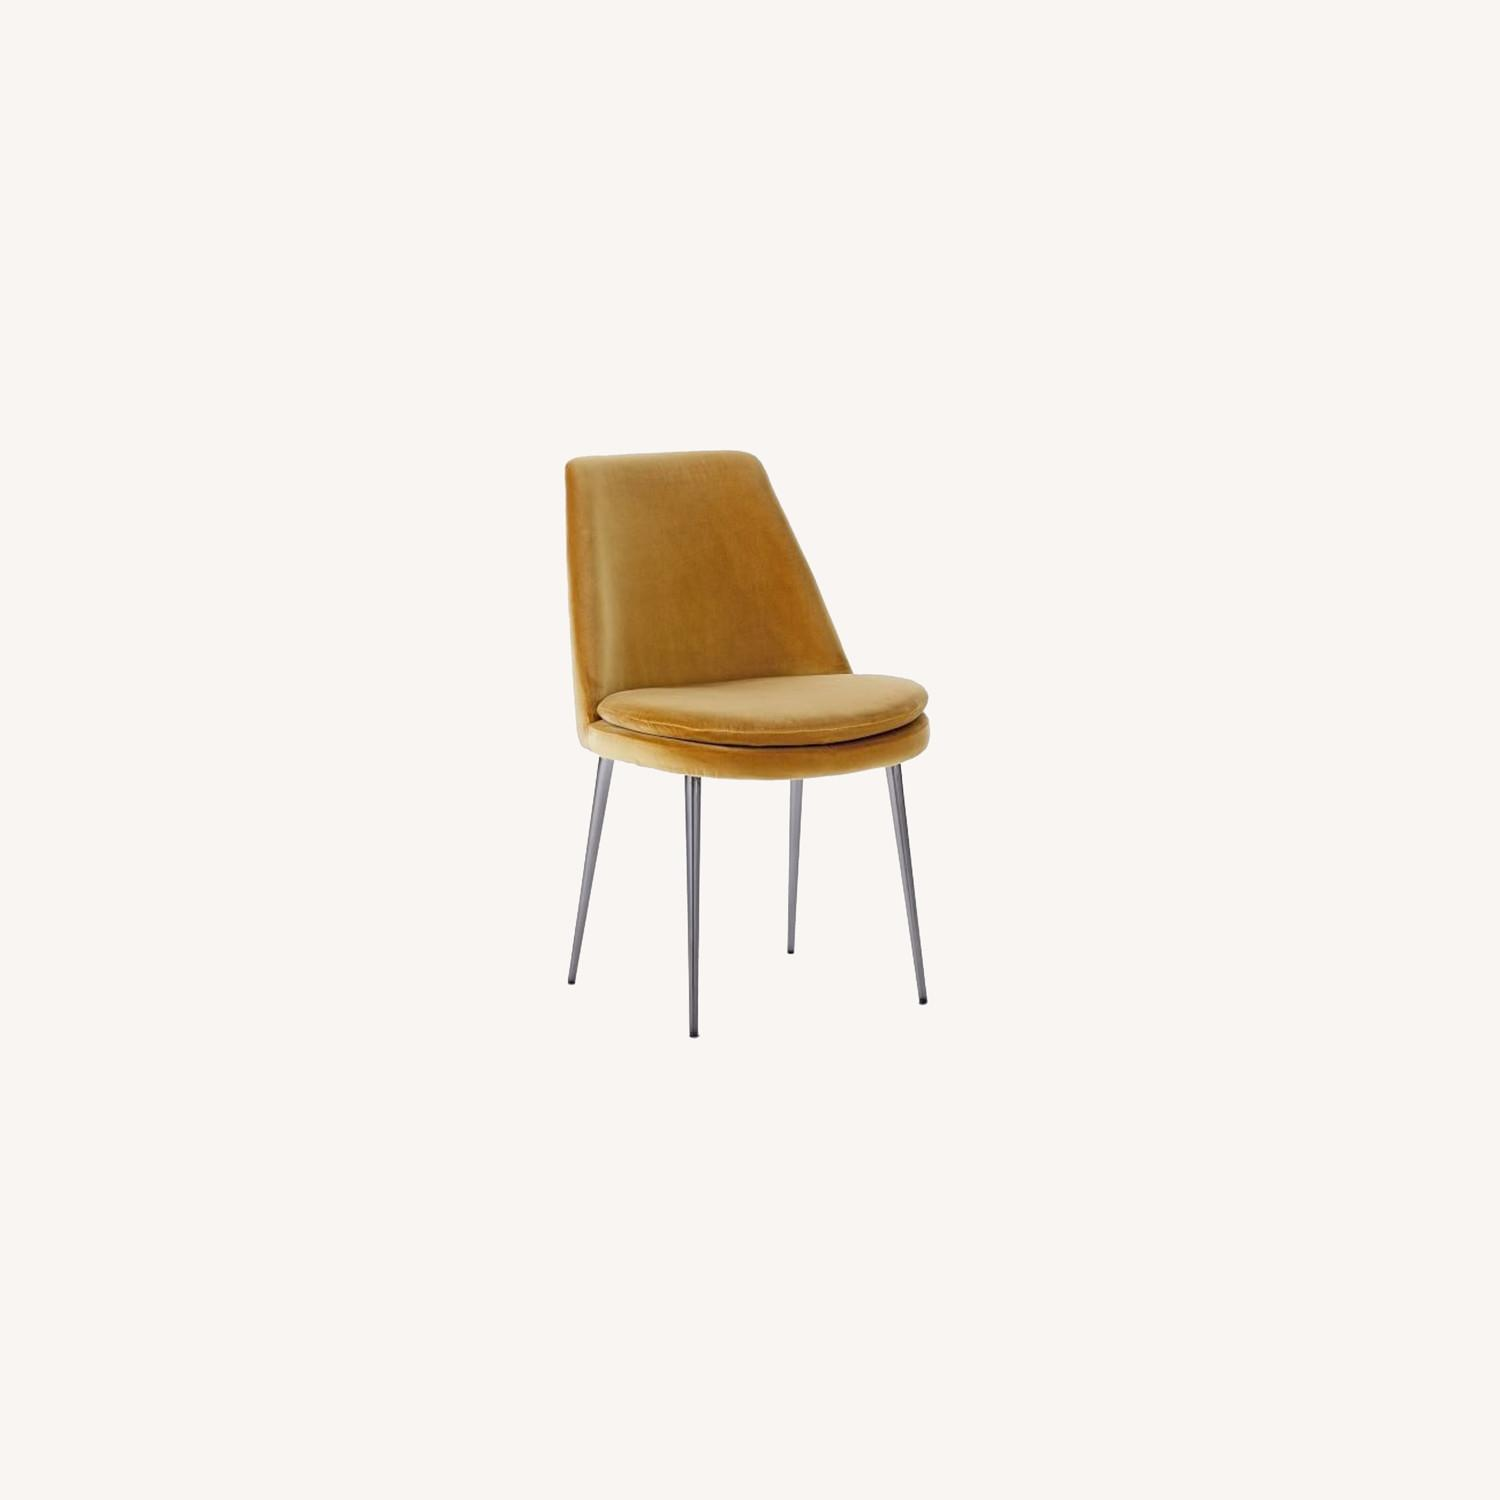 West Elm Finley Low-Back Upholstered Dining Chair - image-0